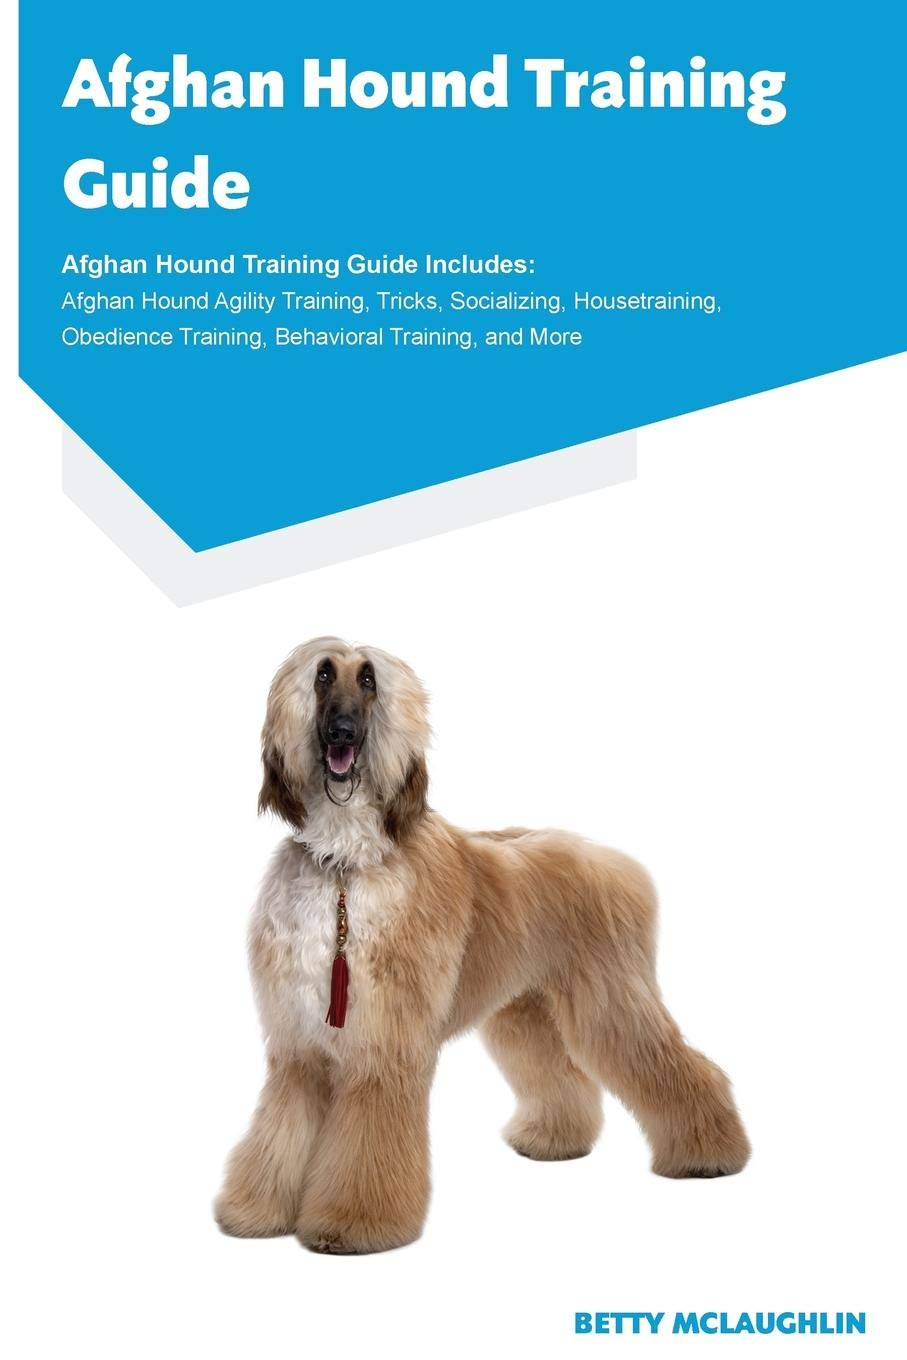 Afghan Hound Training Guide Afghan Hound Training Guide Includes: Afghan Hound Agility Training, Tricks, Socializing, Housetraining, Obedience Training, Behavioural Training, and More